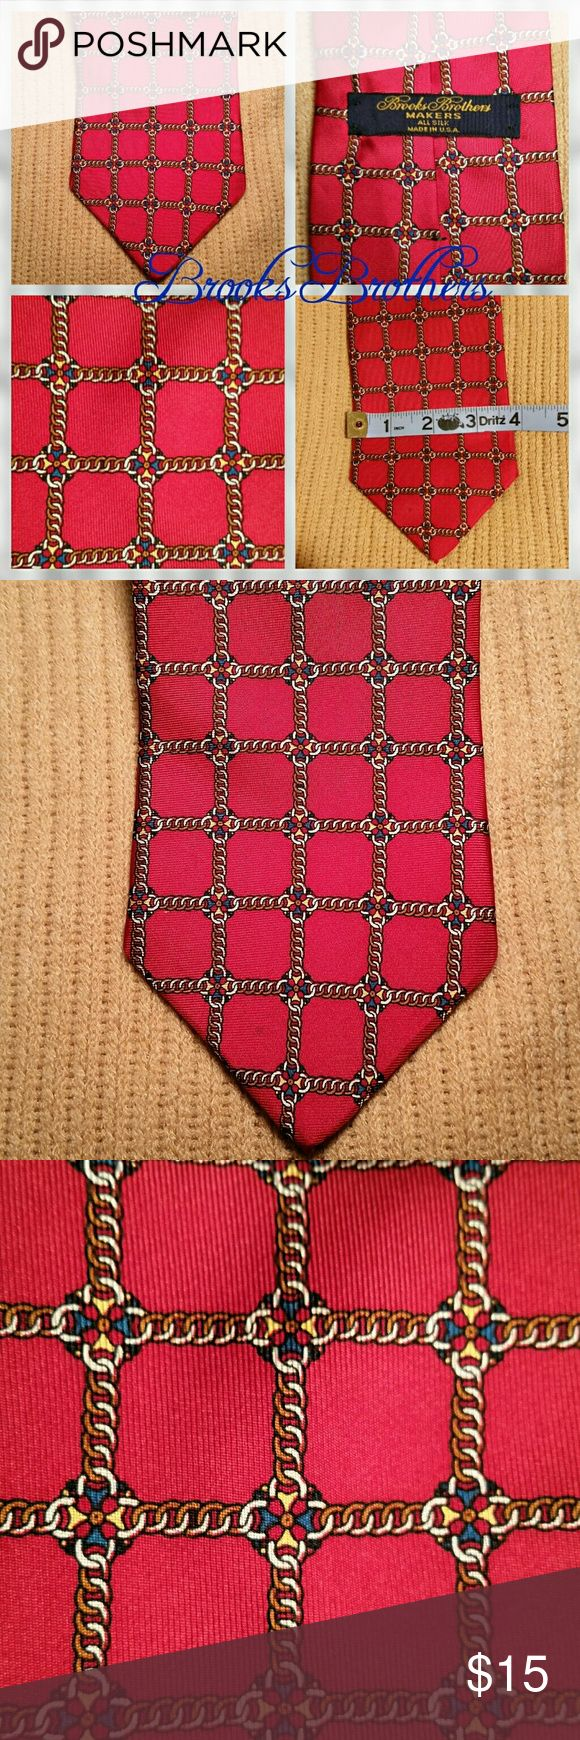 "Brooks Brothers necktie, red Brooks Brothers necktie, 'all silk', red.  4"" across at bottom.  Lovely woven pattern in shades of navy and gold.  Absolutely excellent condition! Brooks Brothers Accessories Ties"